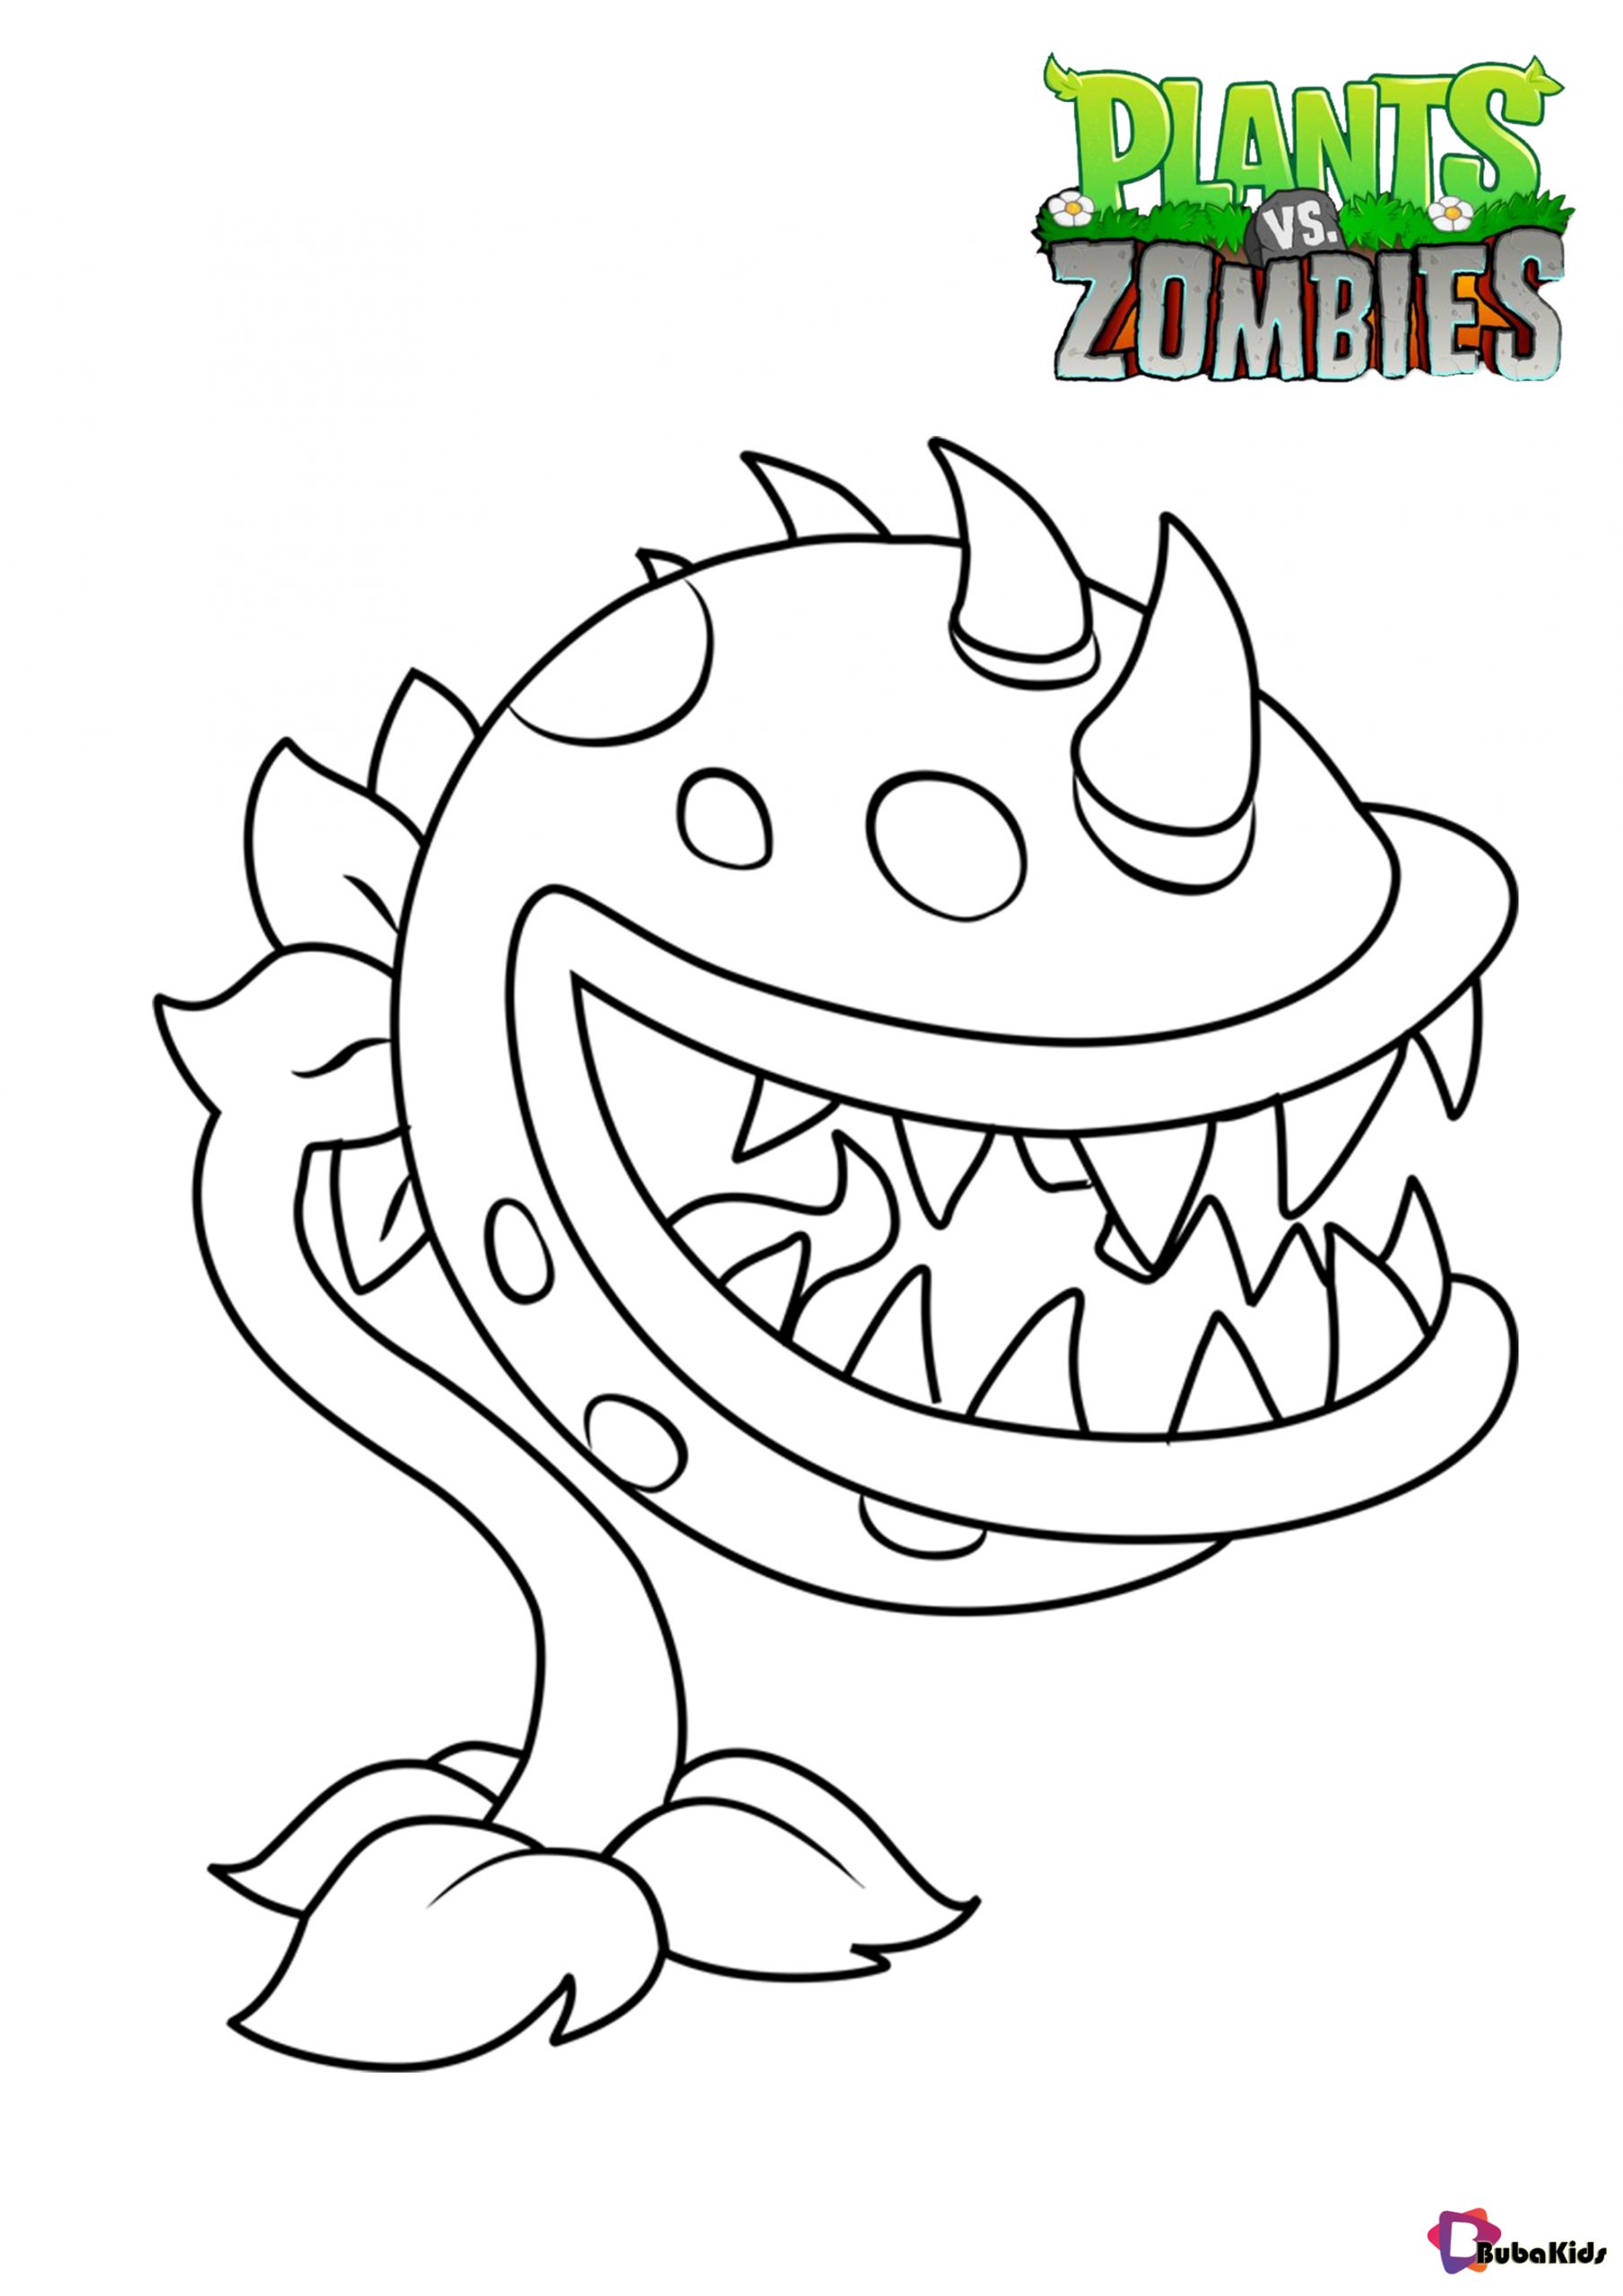 Plants vs Zombies Chomper coloring pages Wallpaper